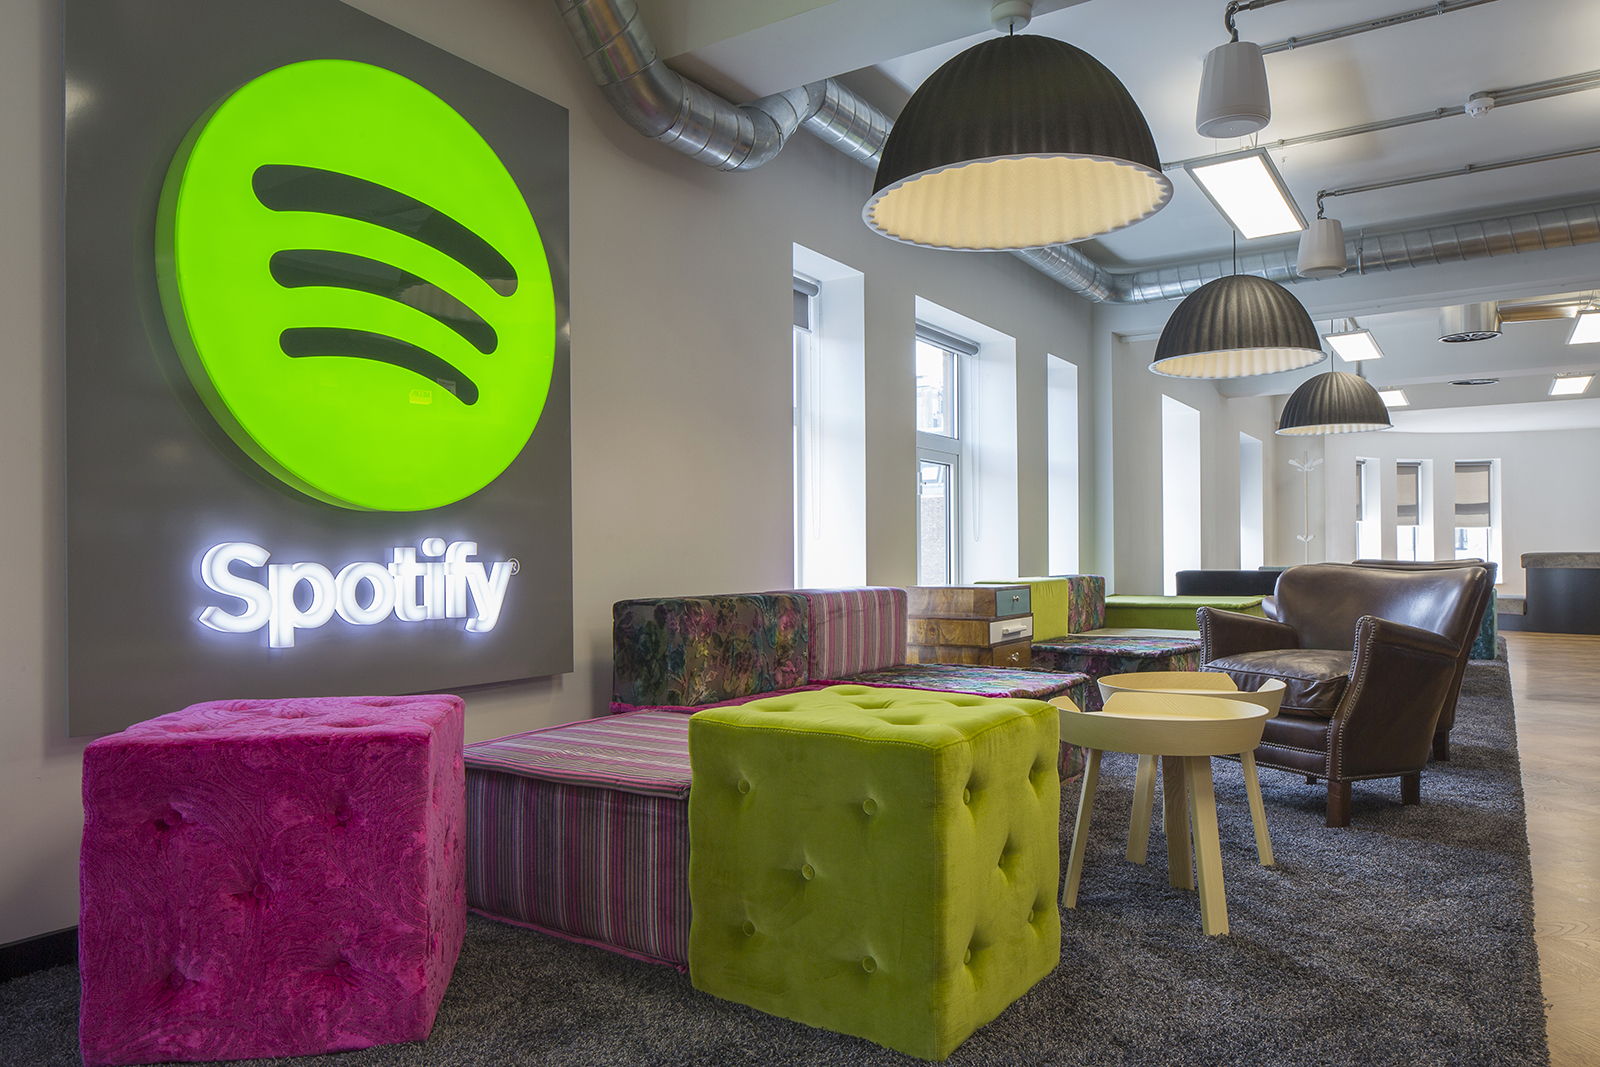 Spotify welcomes new VP as it seeks to ramp up acquisitions